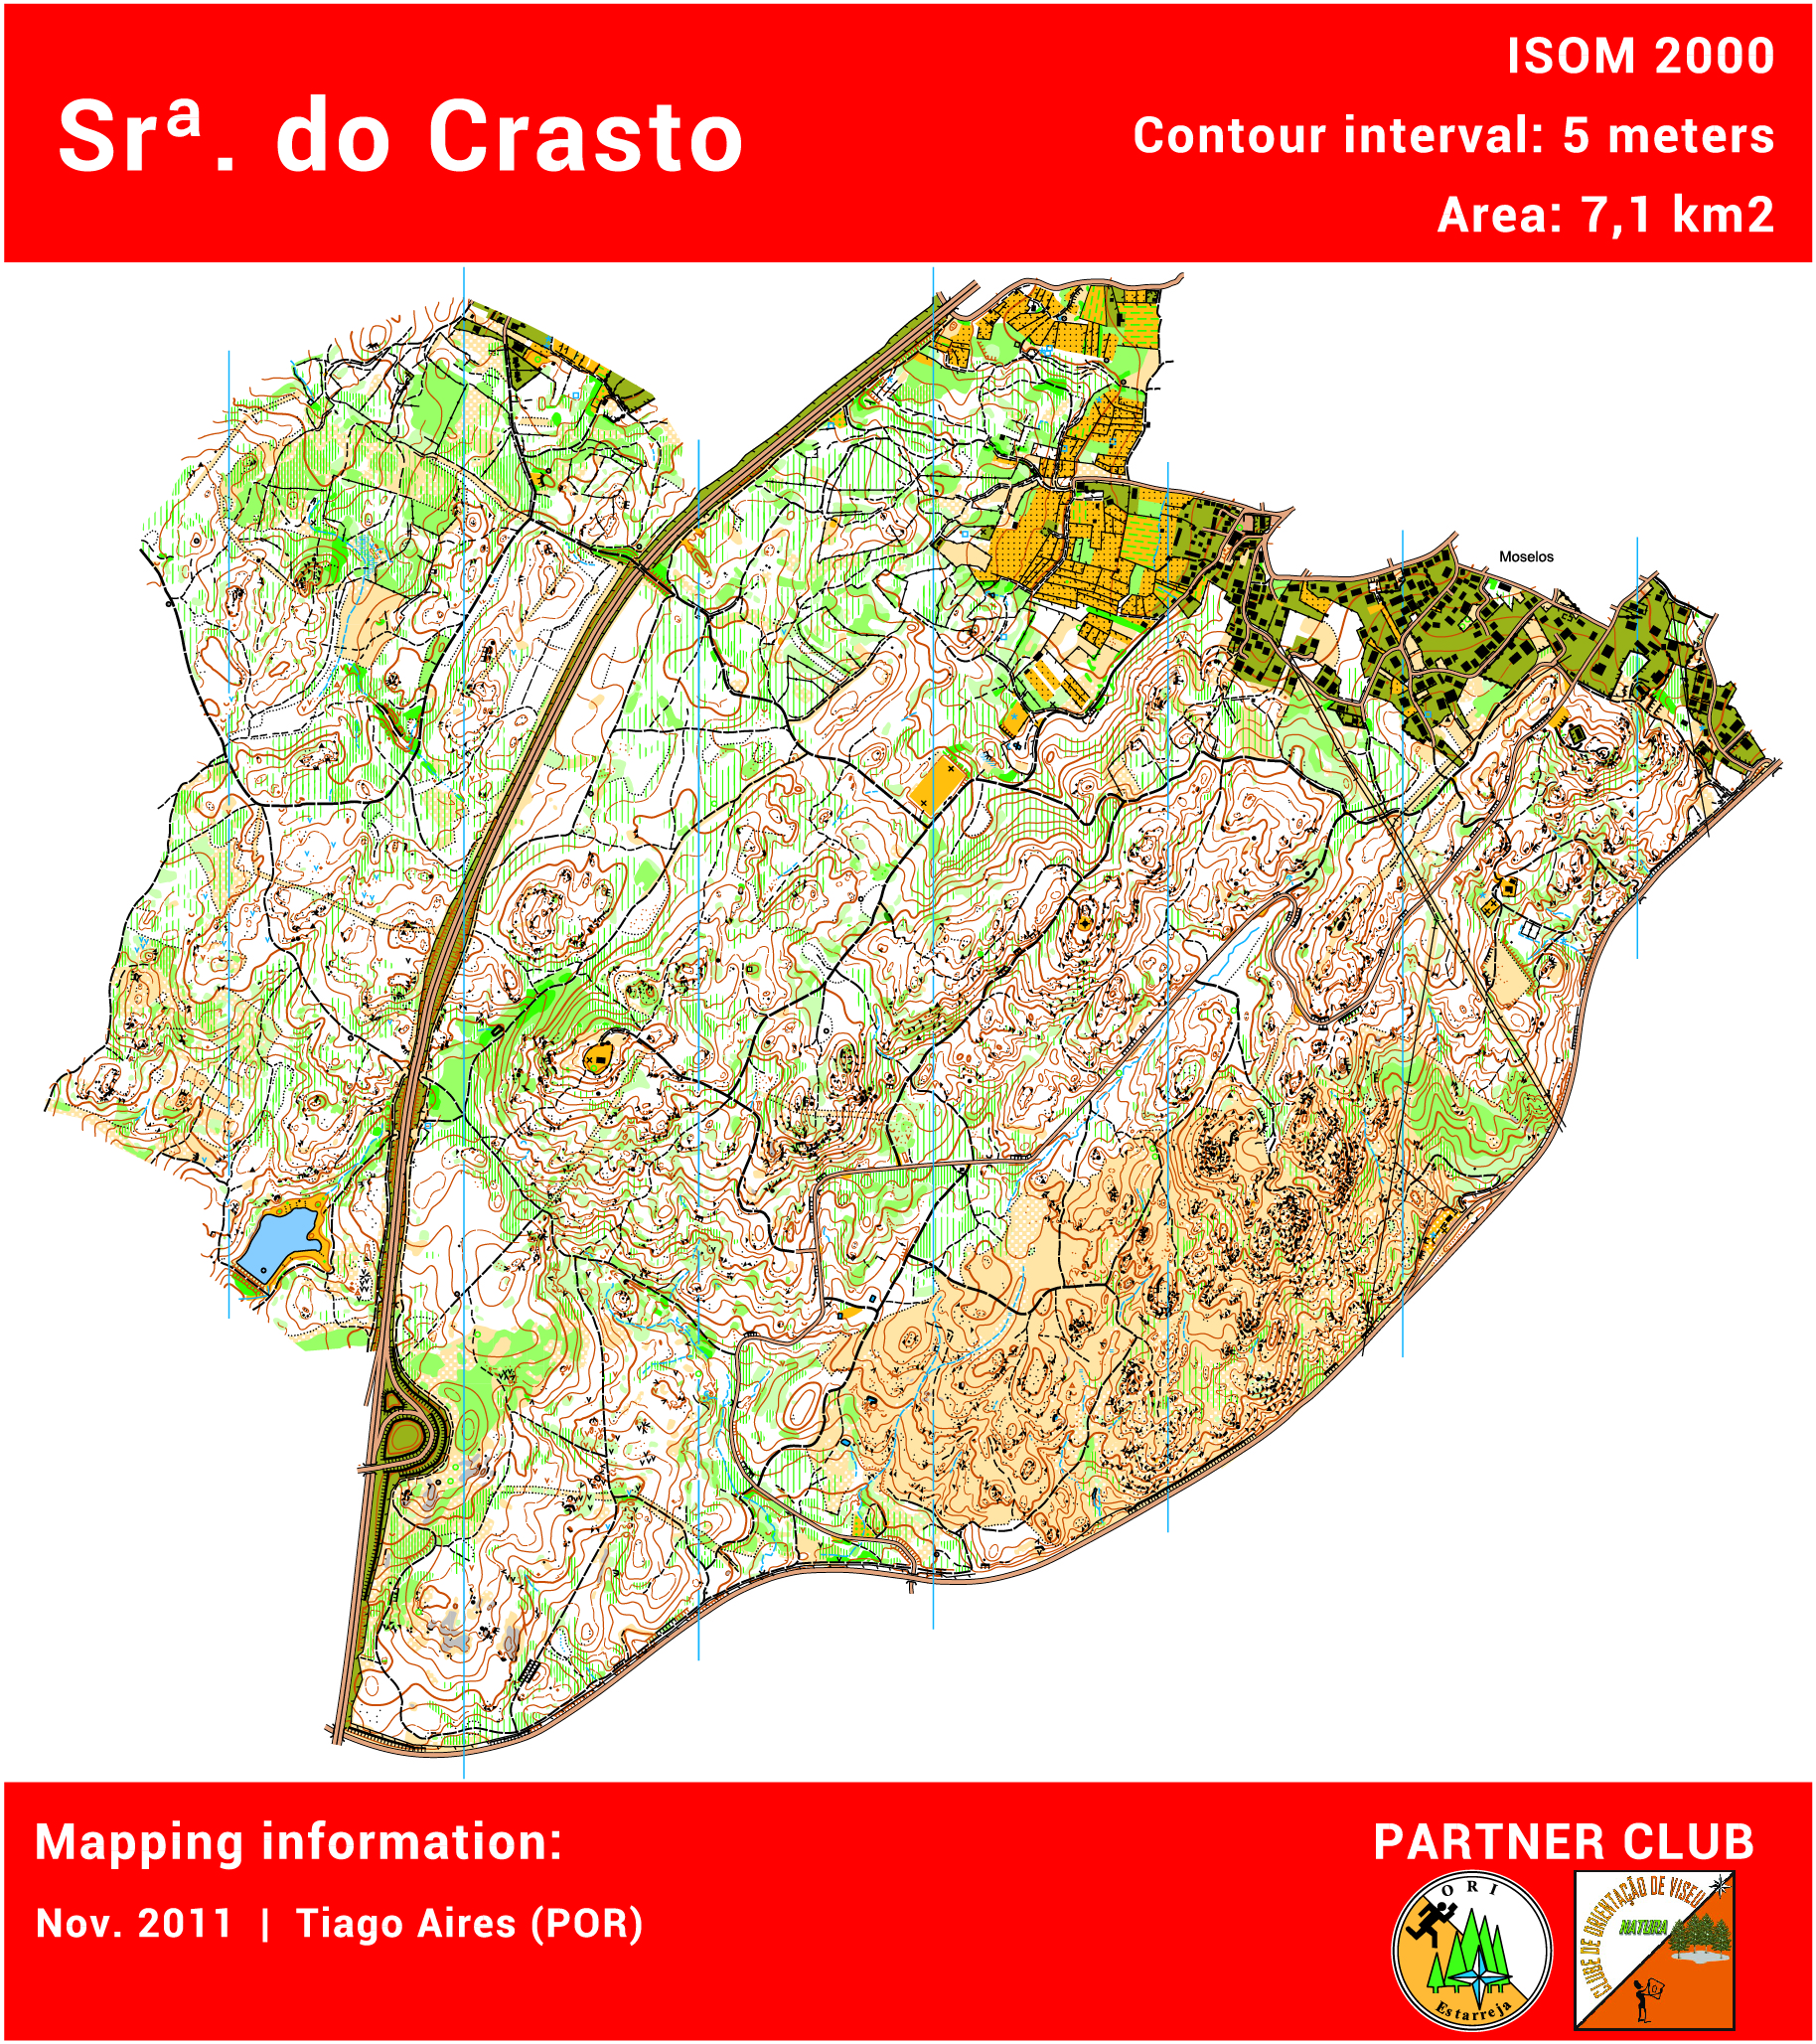 7) Srª do Crasto (7,1 km2) (25/01/2019)